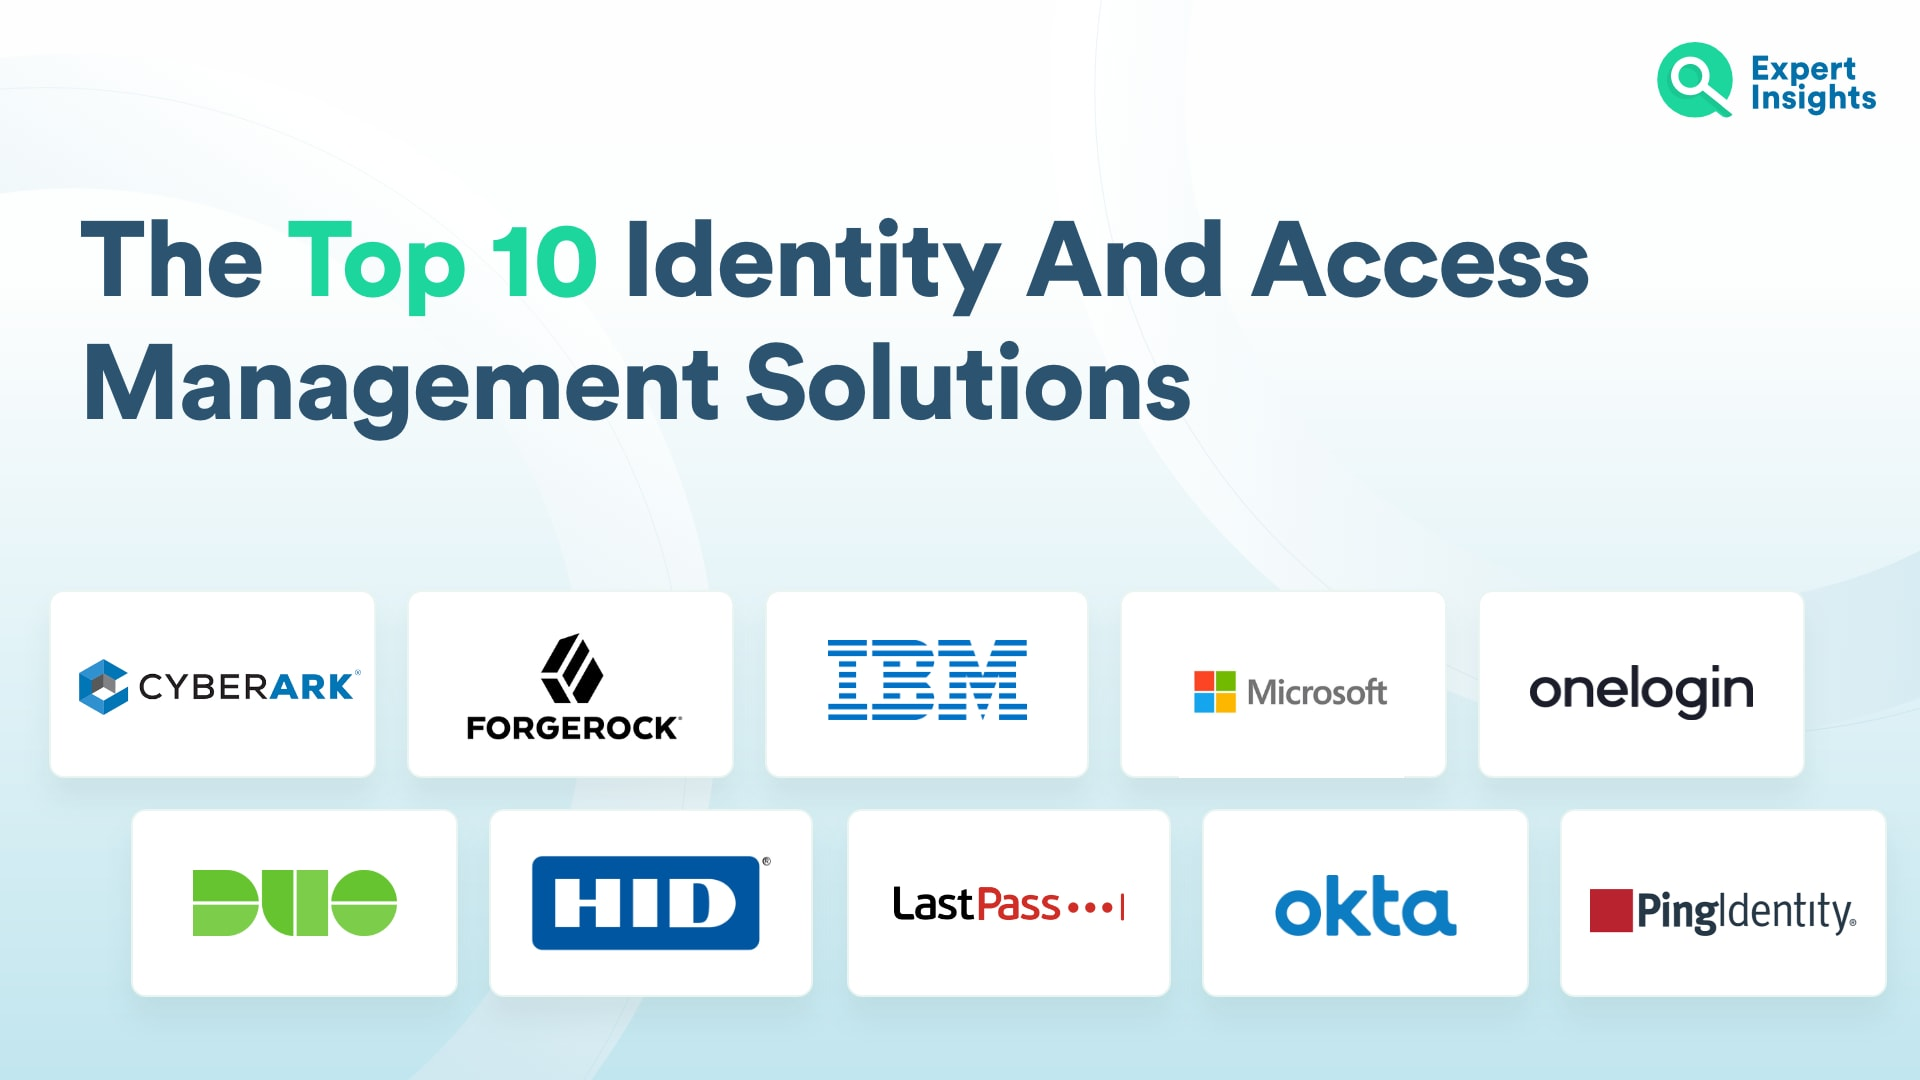 The Top 10 Identity And Access Management Solutions